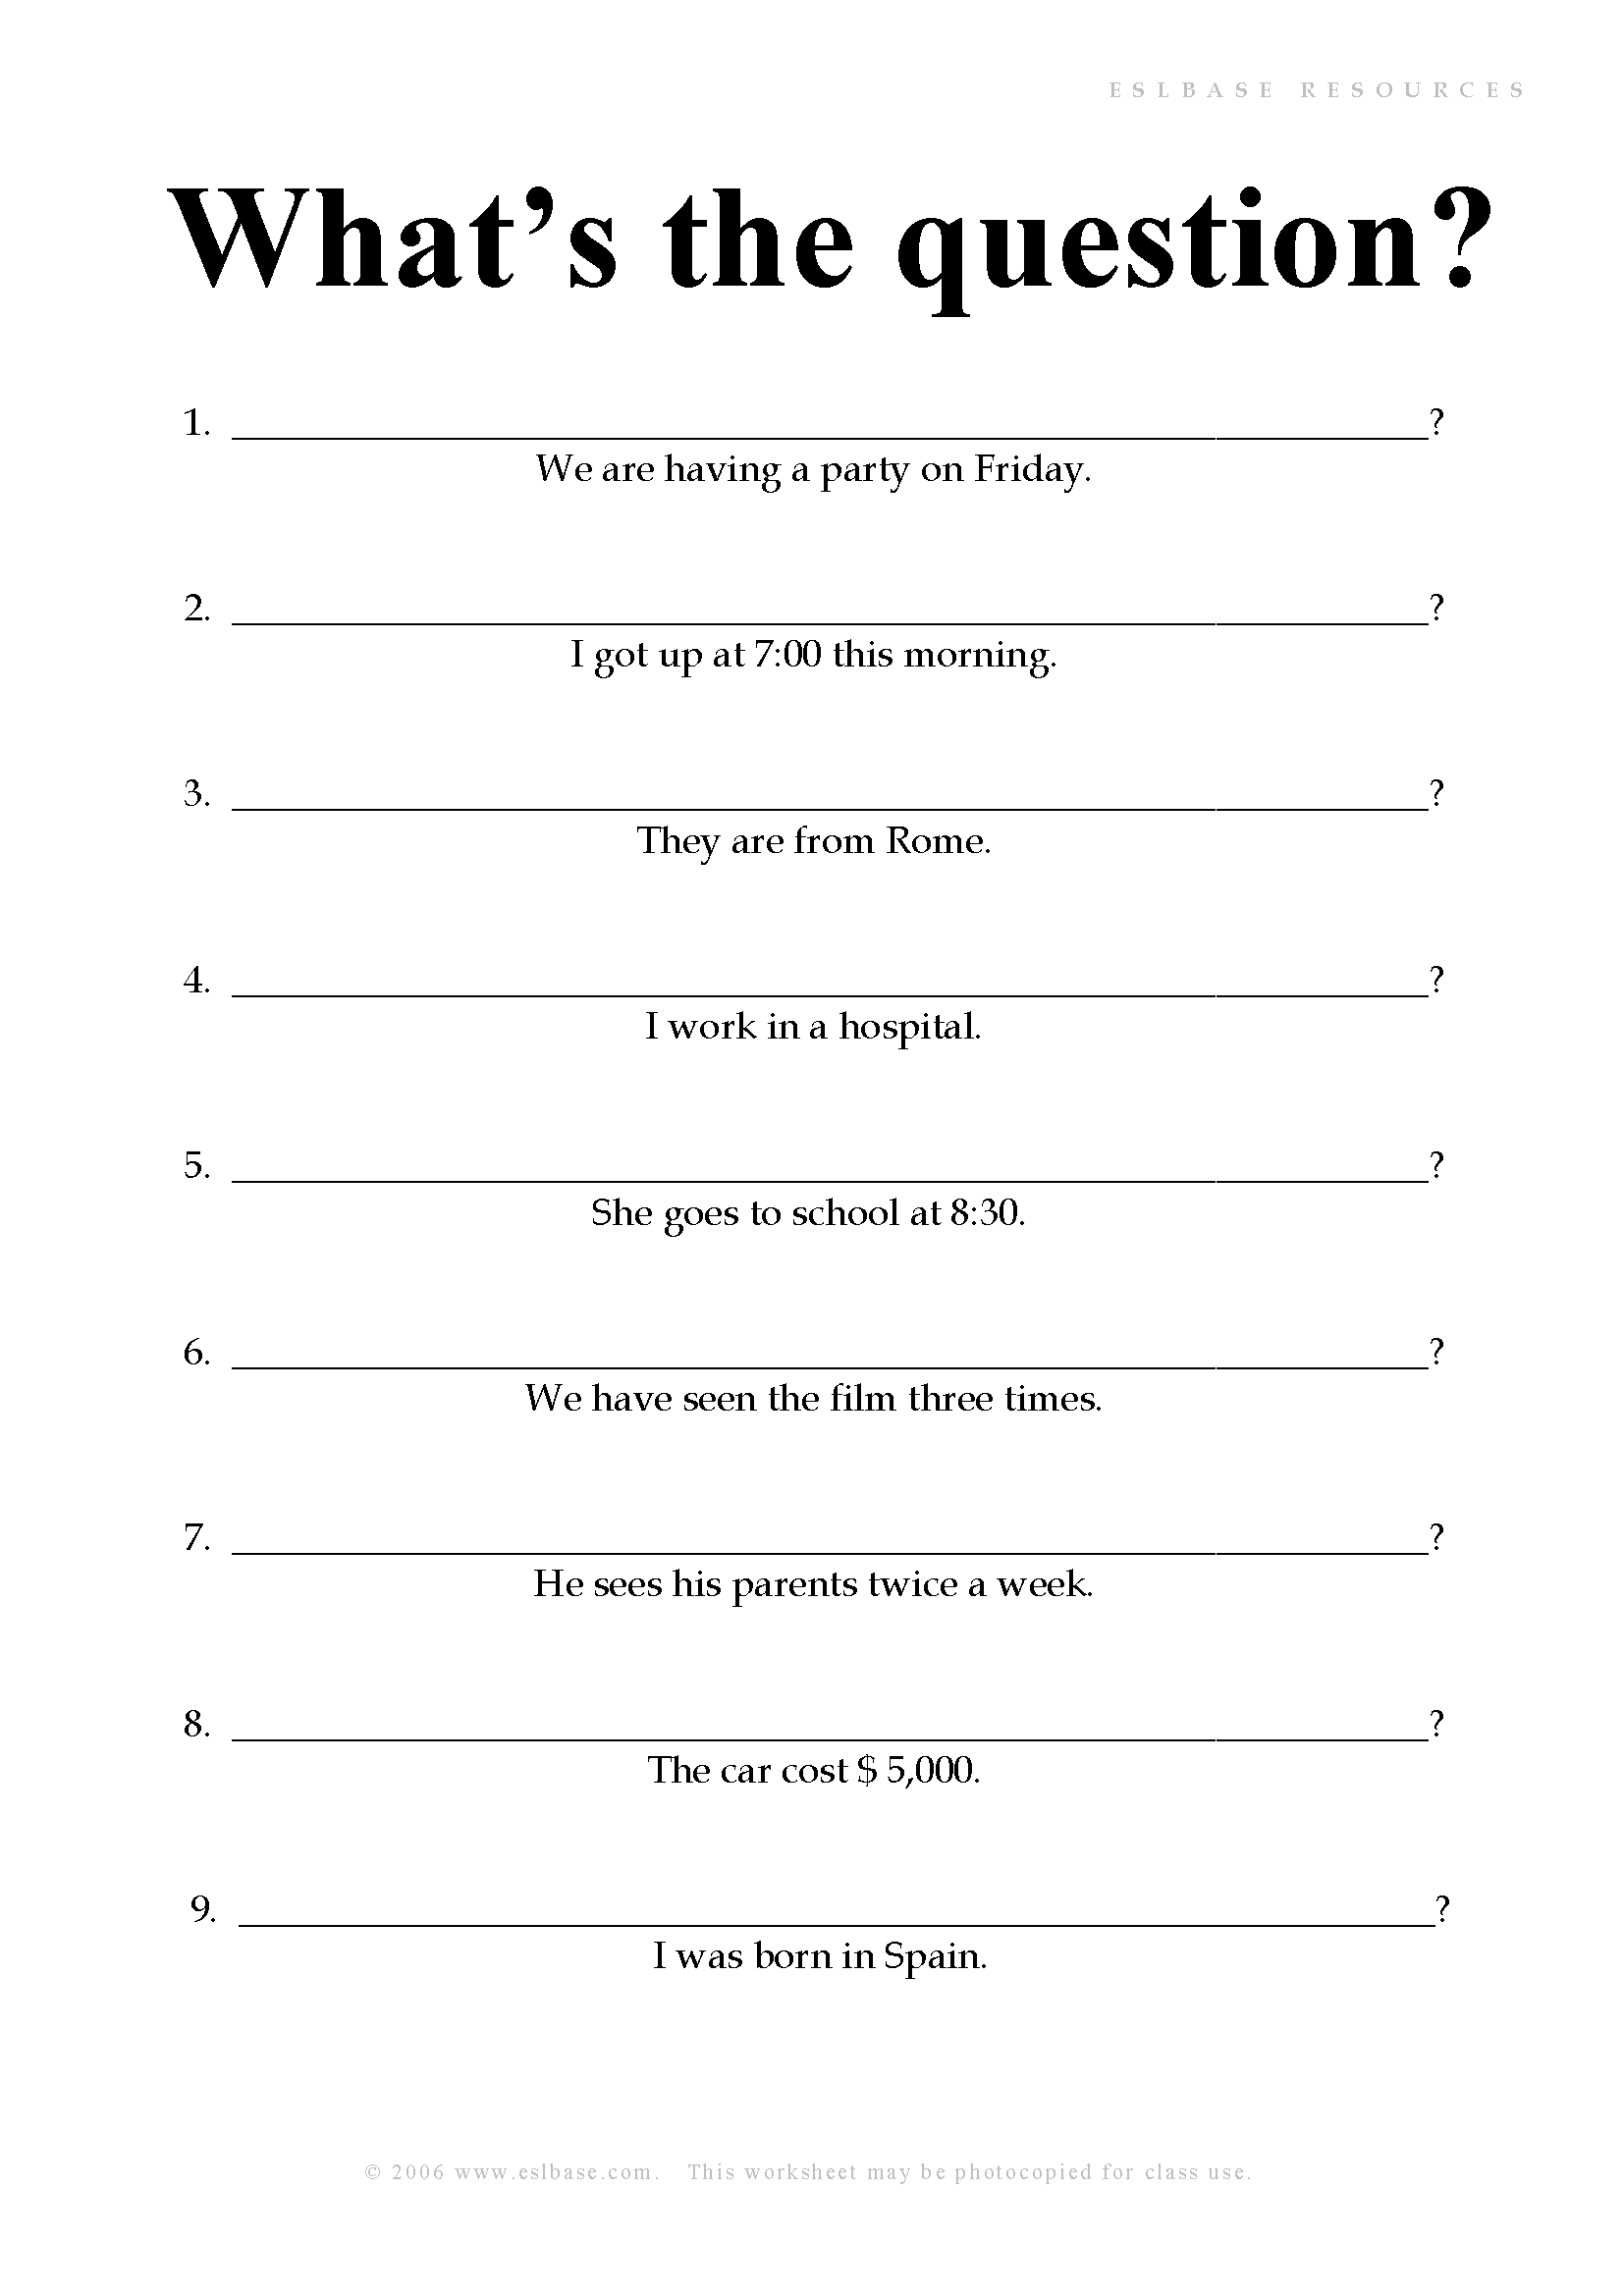 worksheet Esol Worksheets esl worksheets whats the question eslbase com question